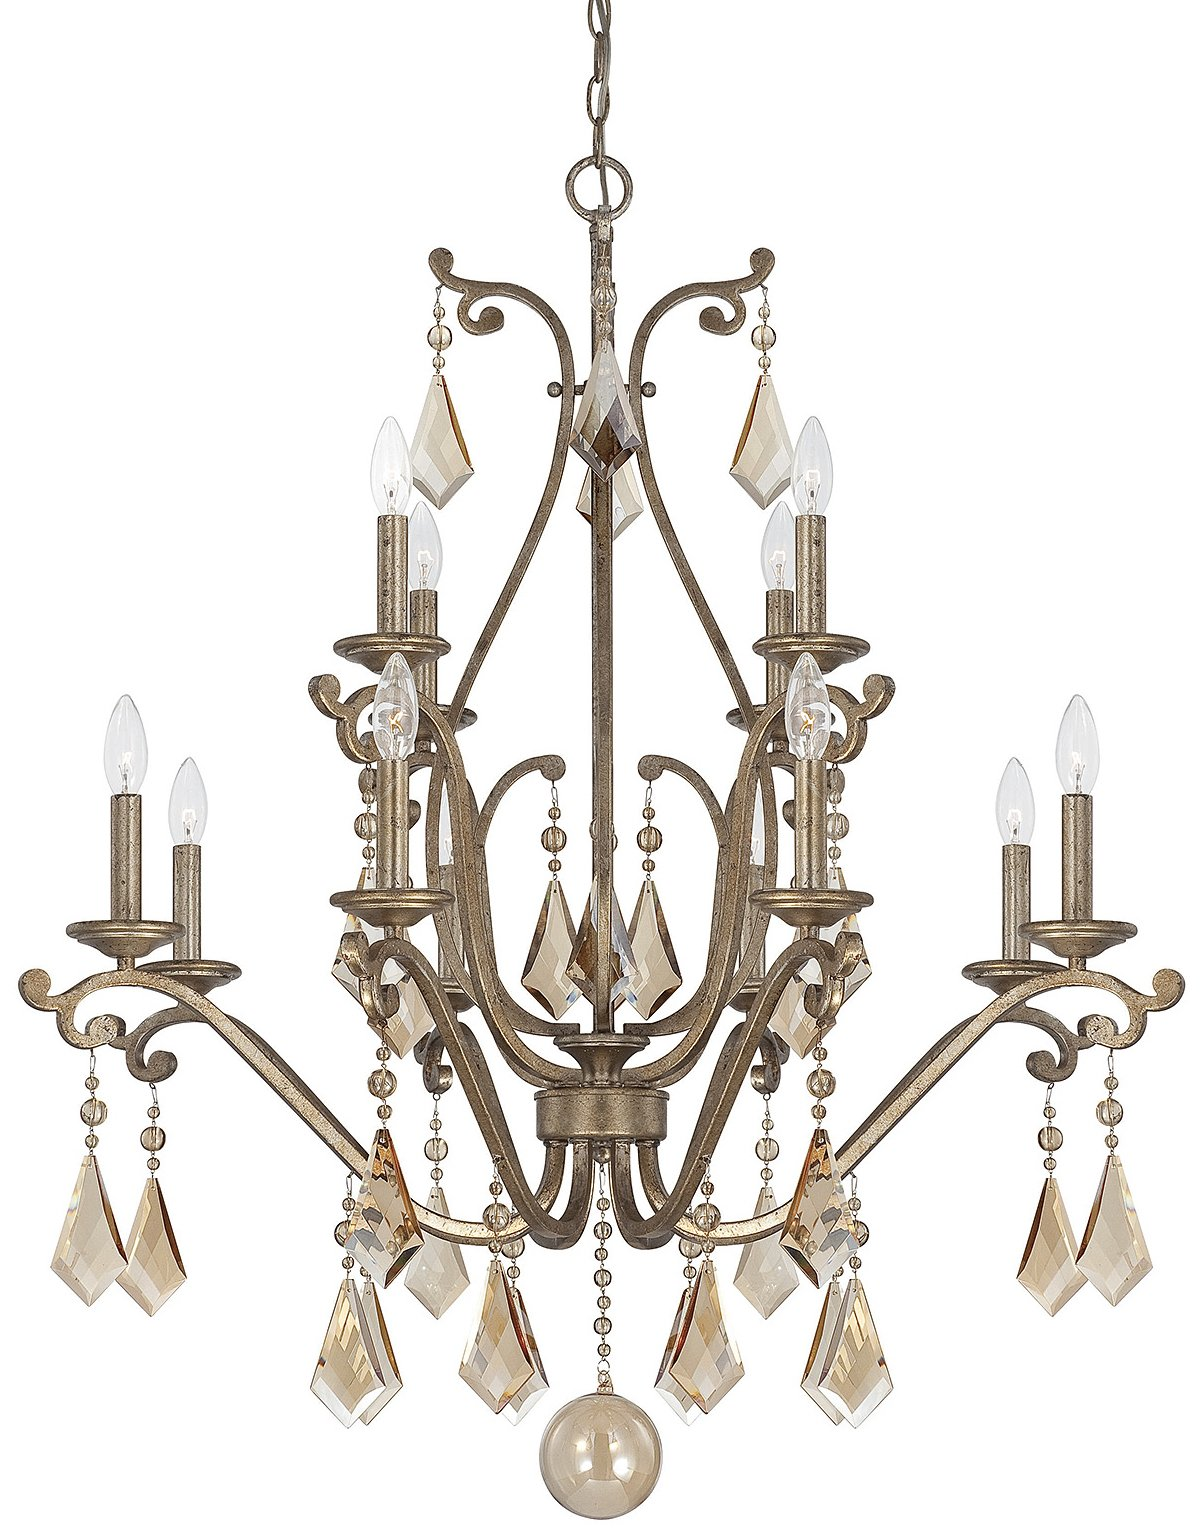 Federico martinez 1 8101 12 128 rothchild traditional crystal chandelier svh 1 8101 12 128 - Traditional crystal chandeliers ...